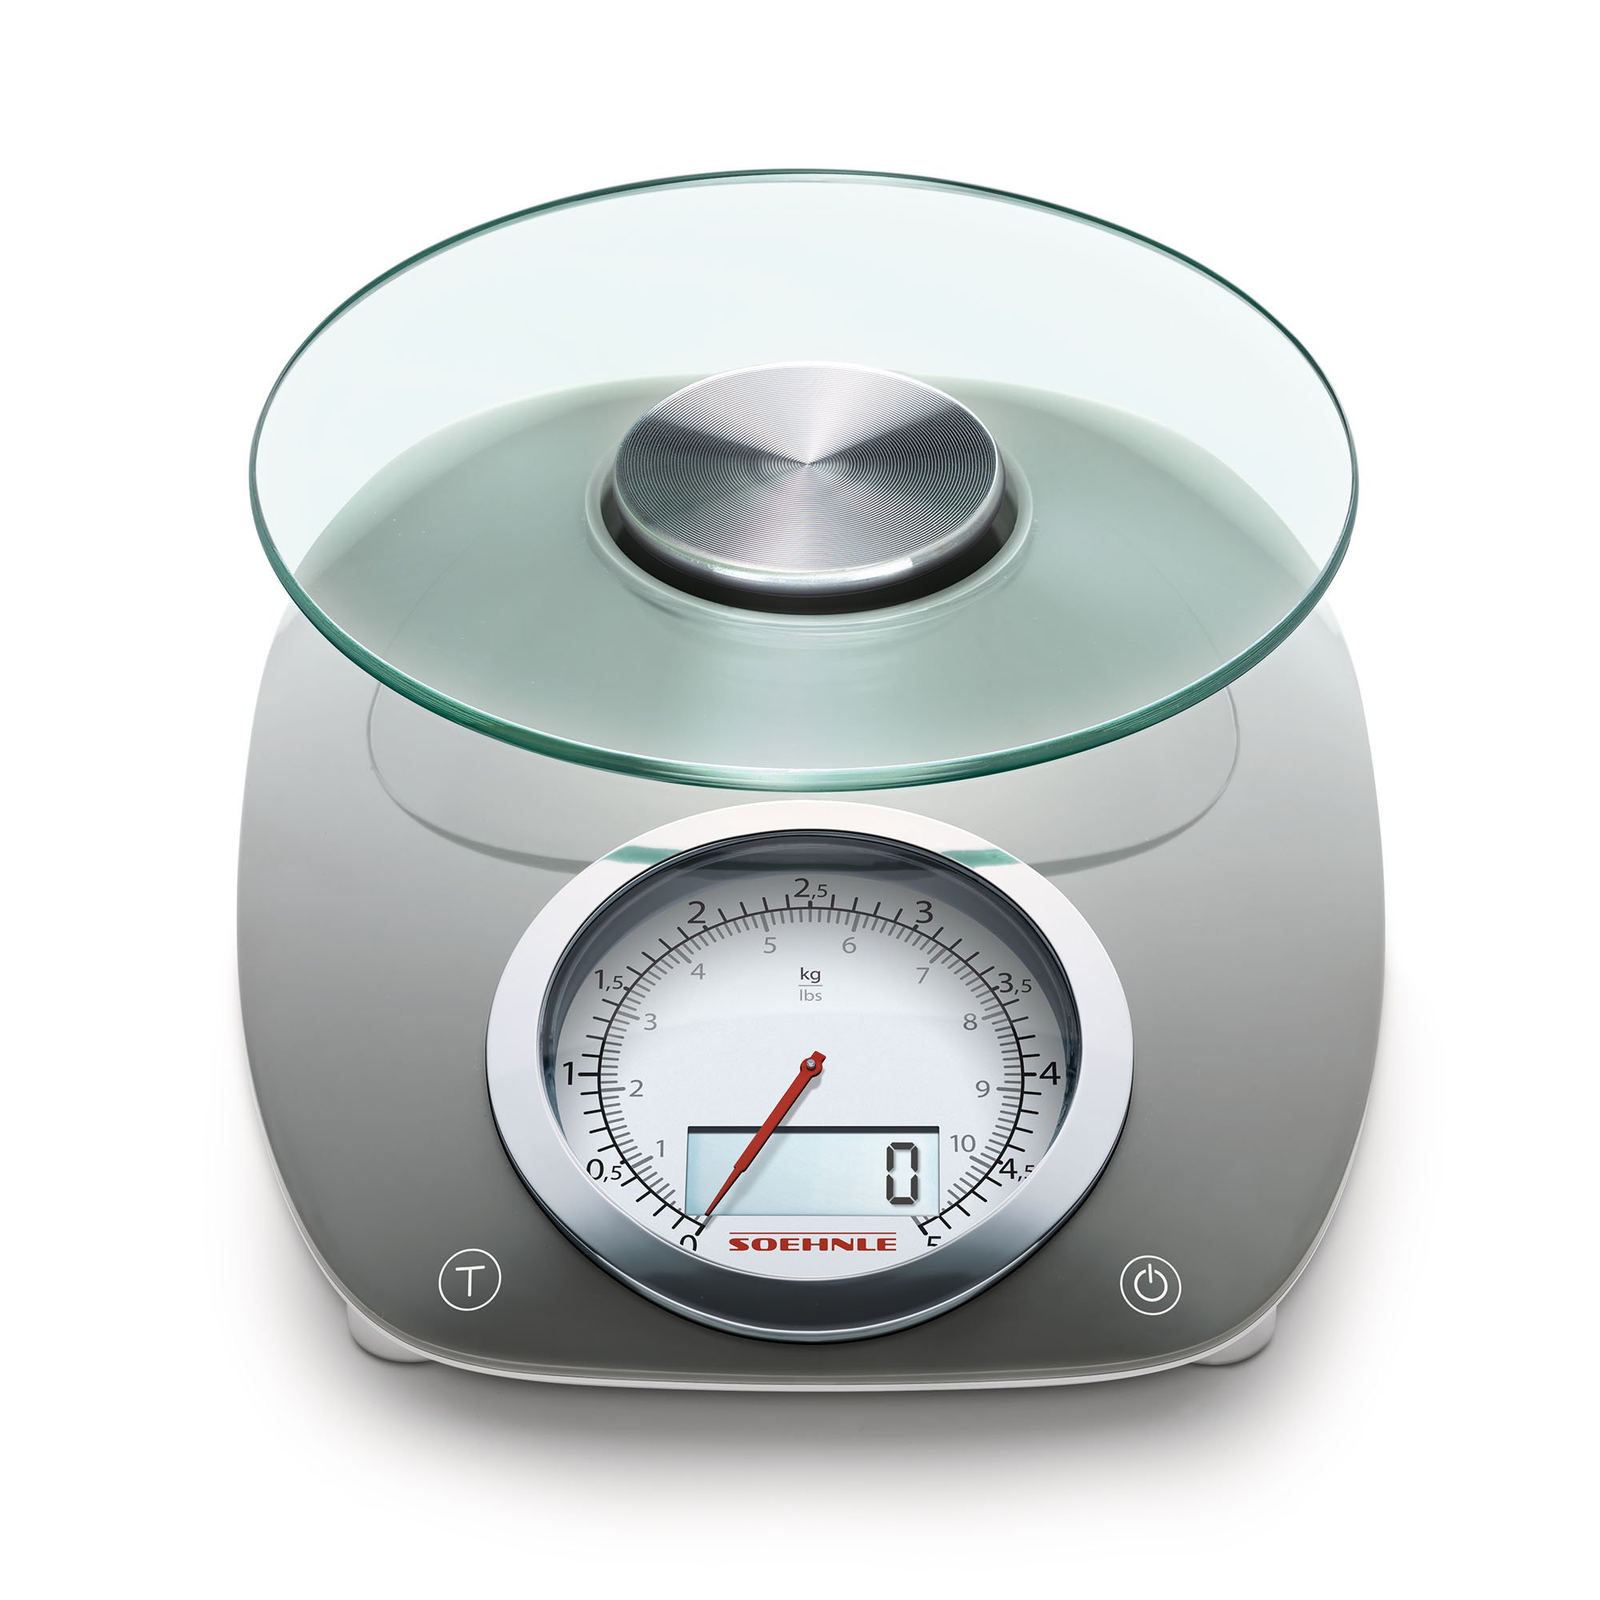 Details about Soehnle Vintage Style Digital Kitchen Scale, Gray